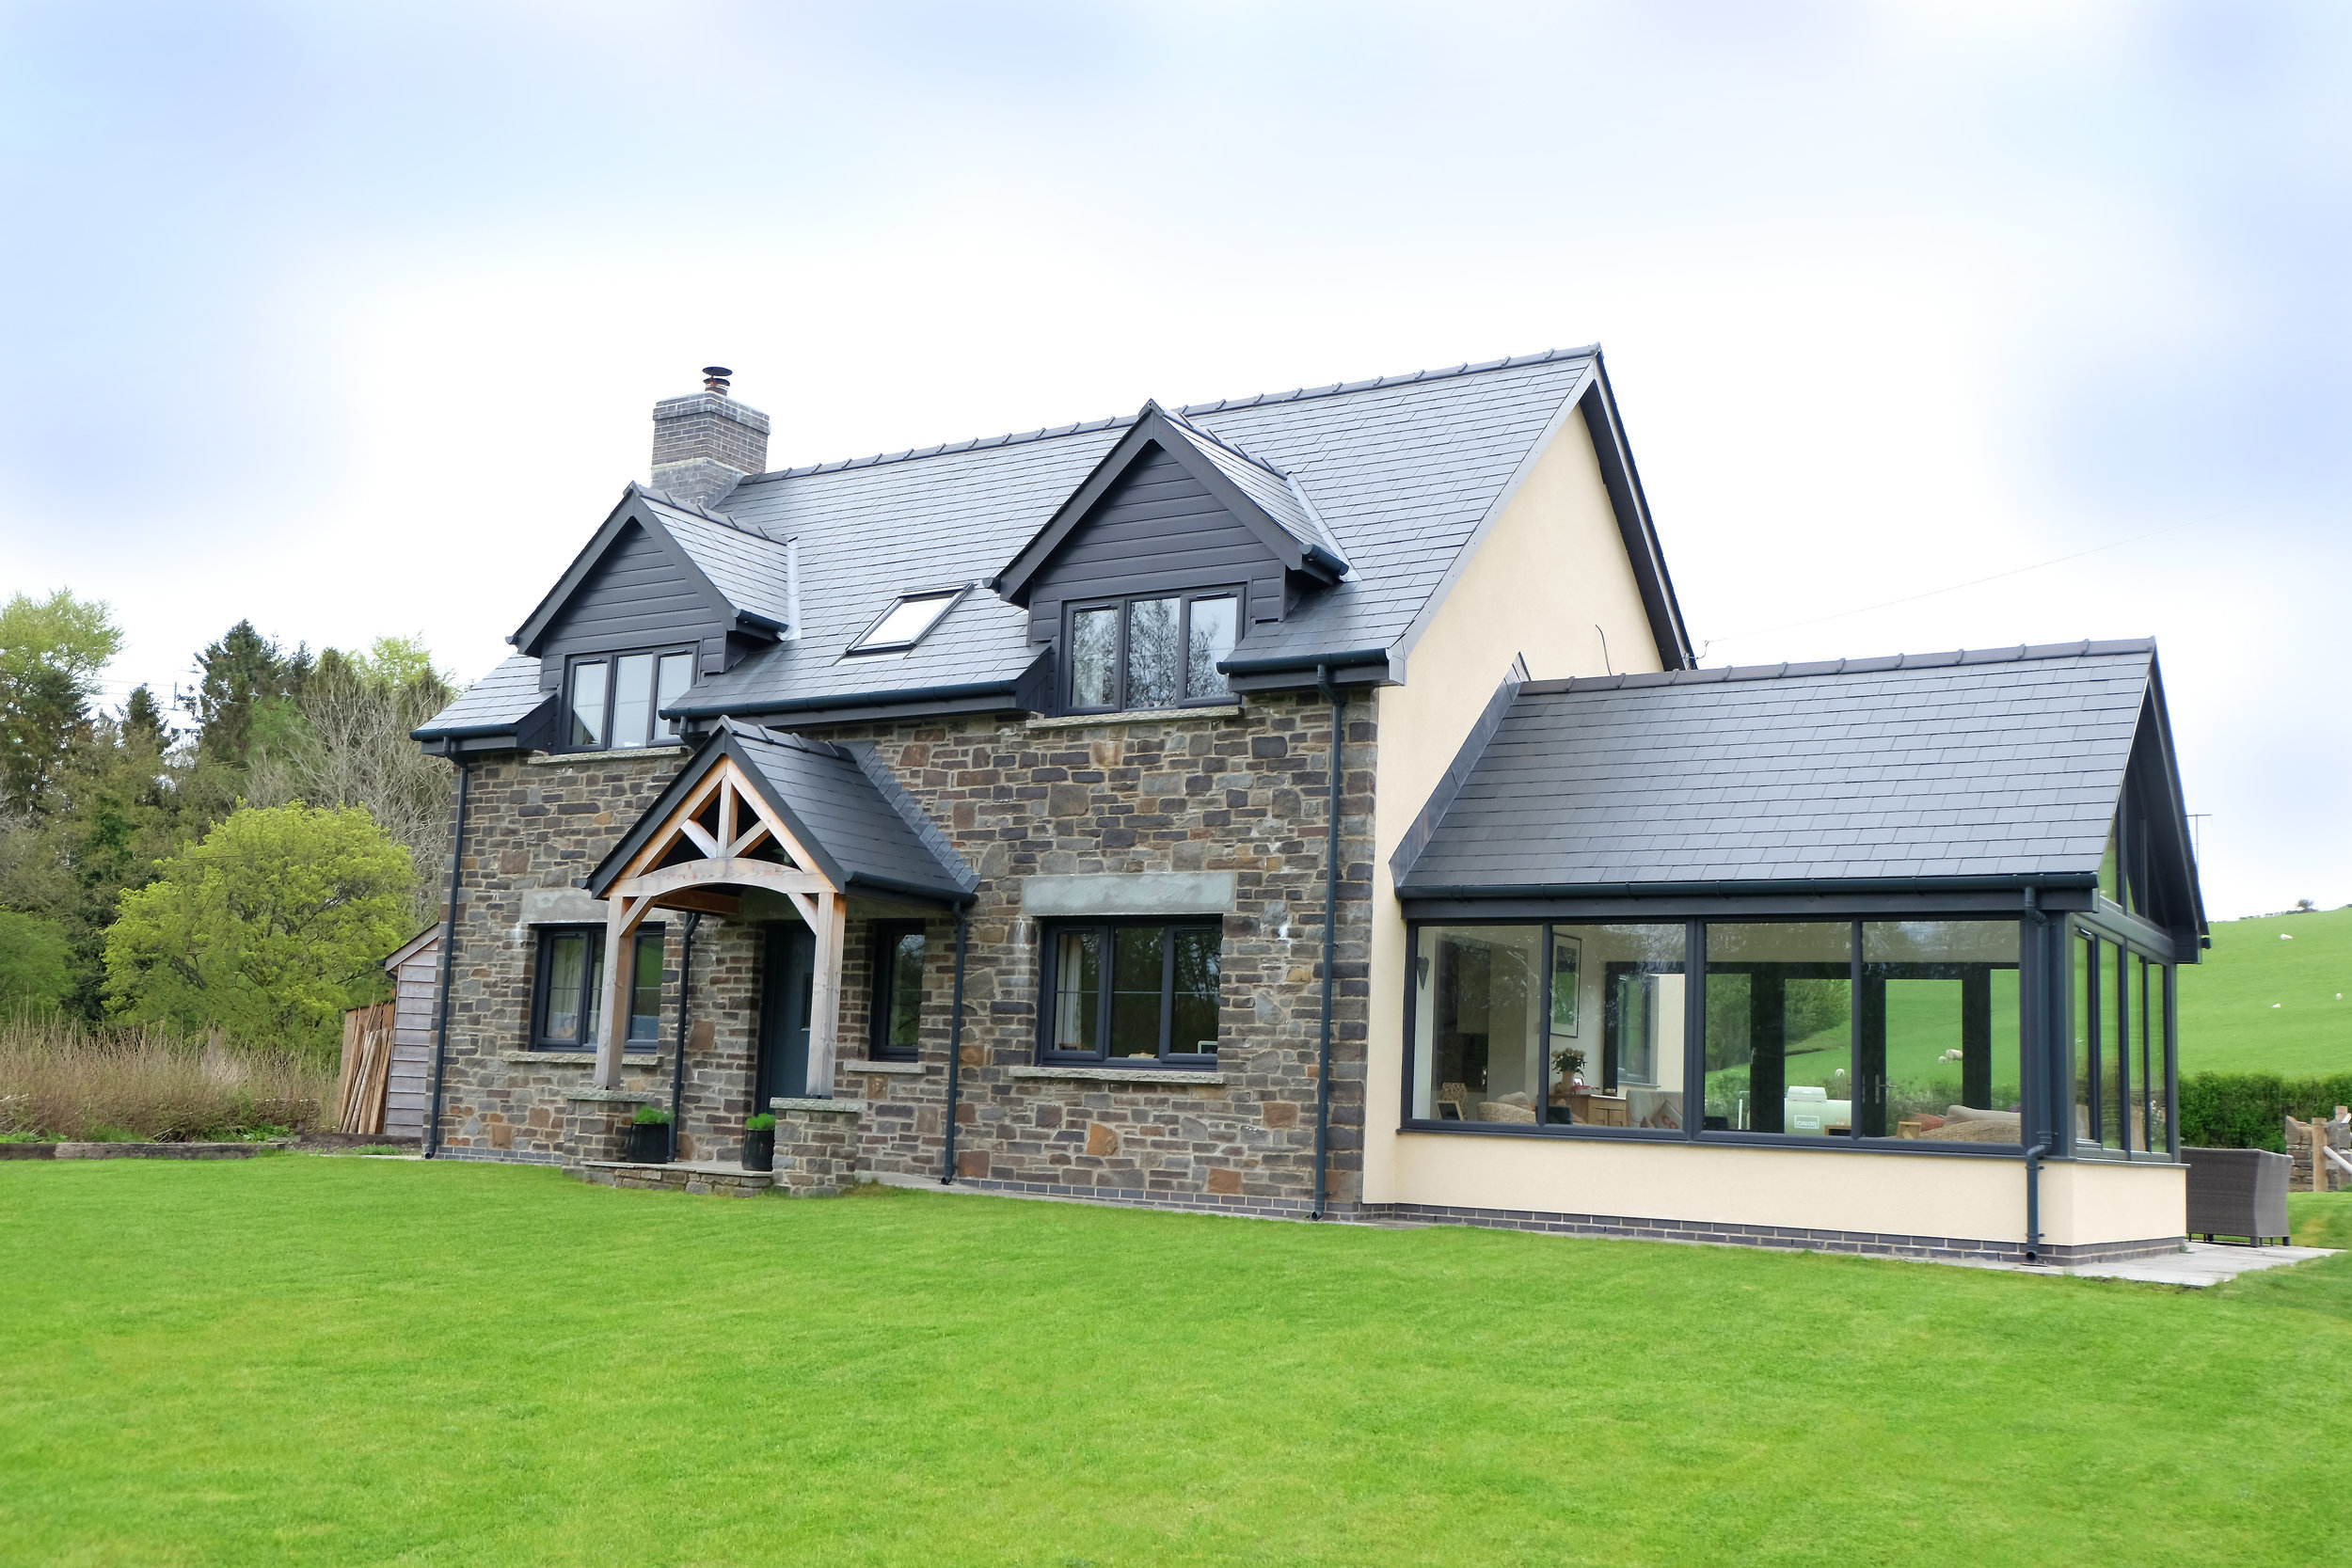 A detached house developed by Andrew M Davies Building Contractors